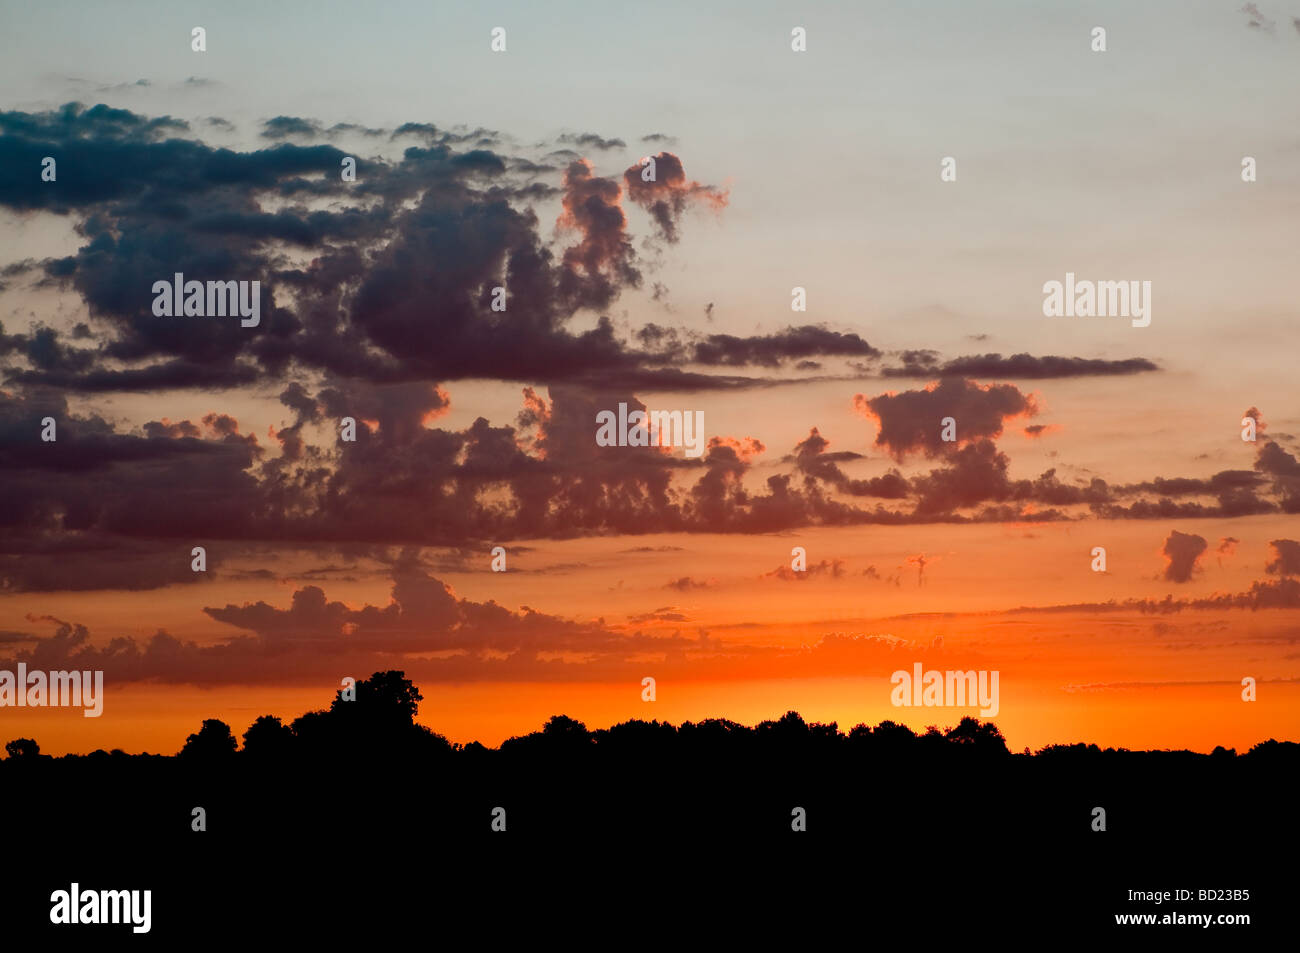 Dawn / sunrise / first light with Cumulus and Altocumulus clouds - Indre-et-Loire, France. - Stock Image